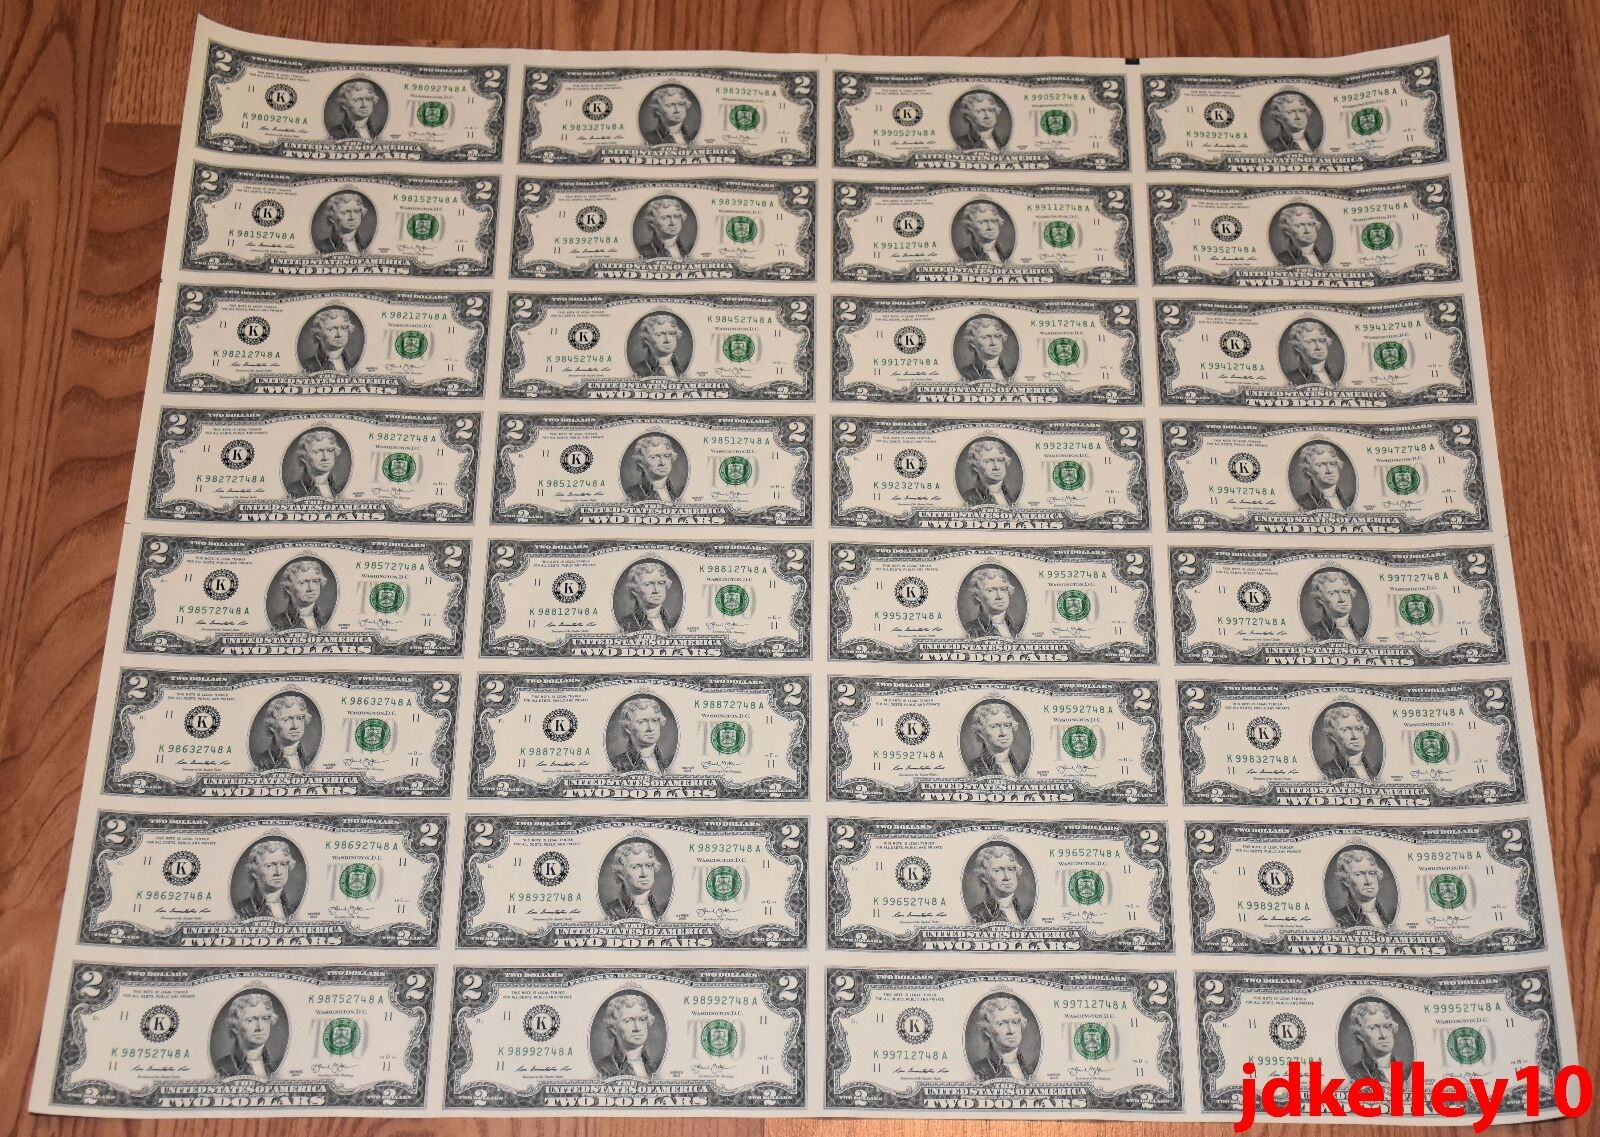 $2 UNCUT SHEET TWO DOLLAR BILLS $2x32 2013 UNITED STATES CURRENCY MONEY BEP NEW